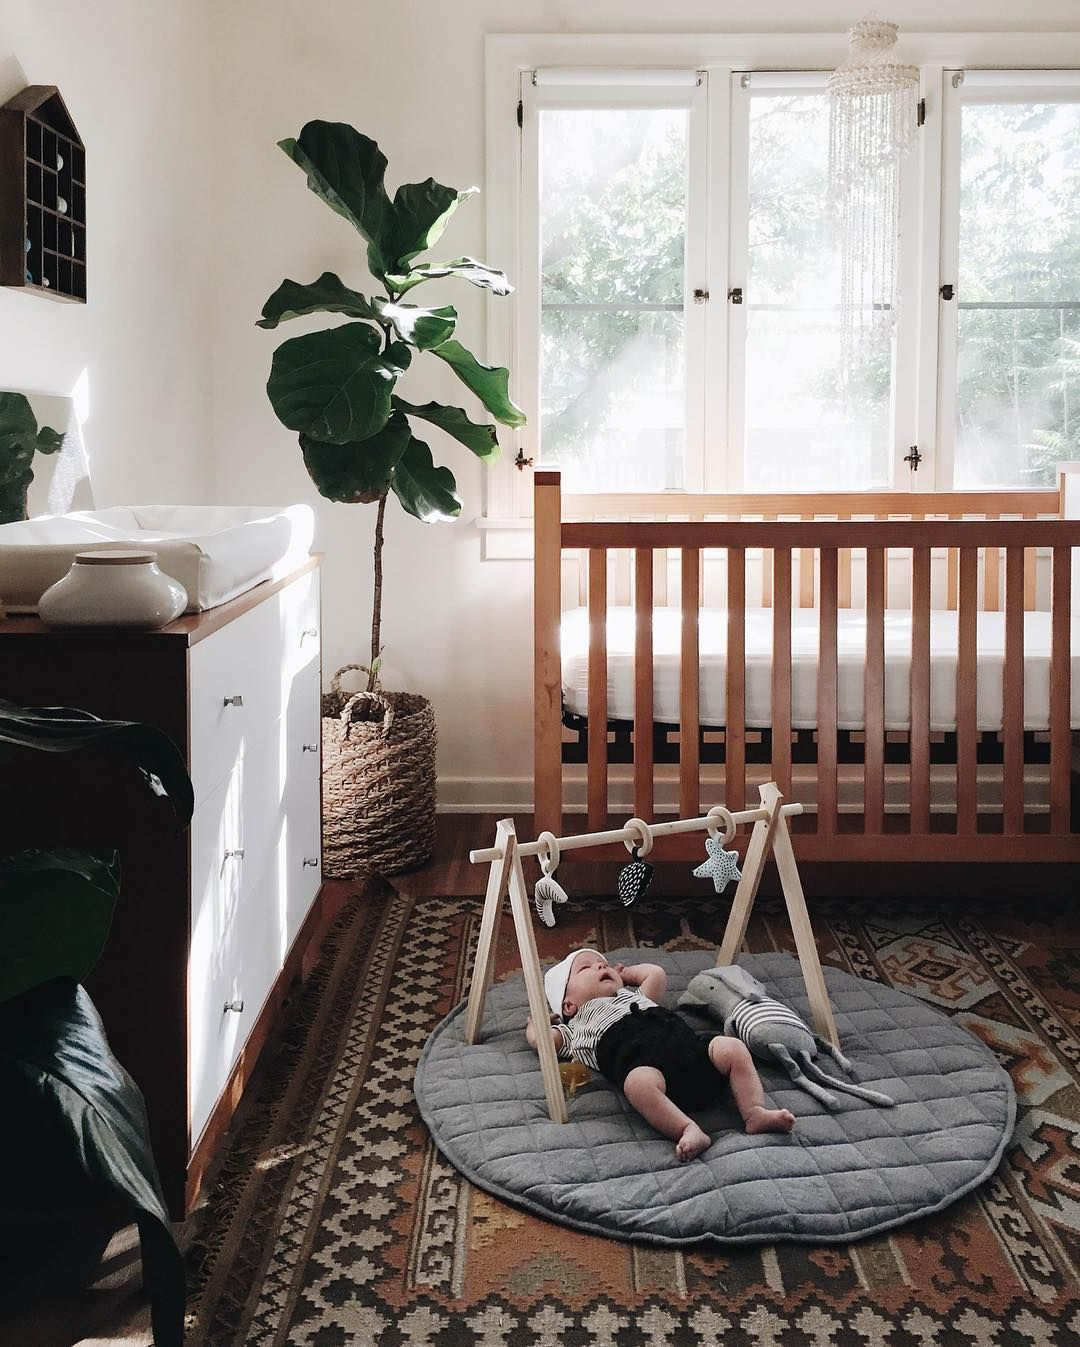 A warm modern nursery with wood fiddled